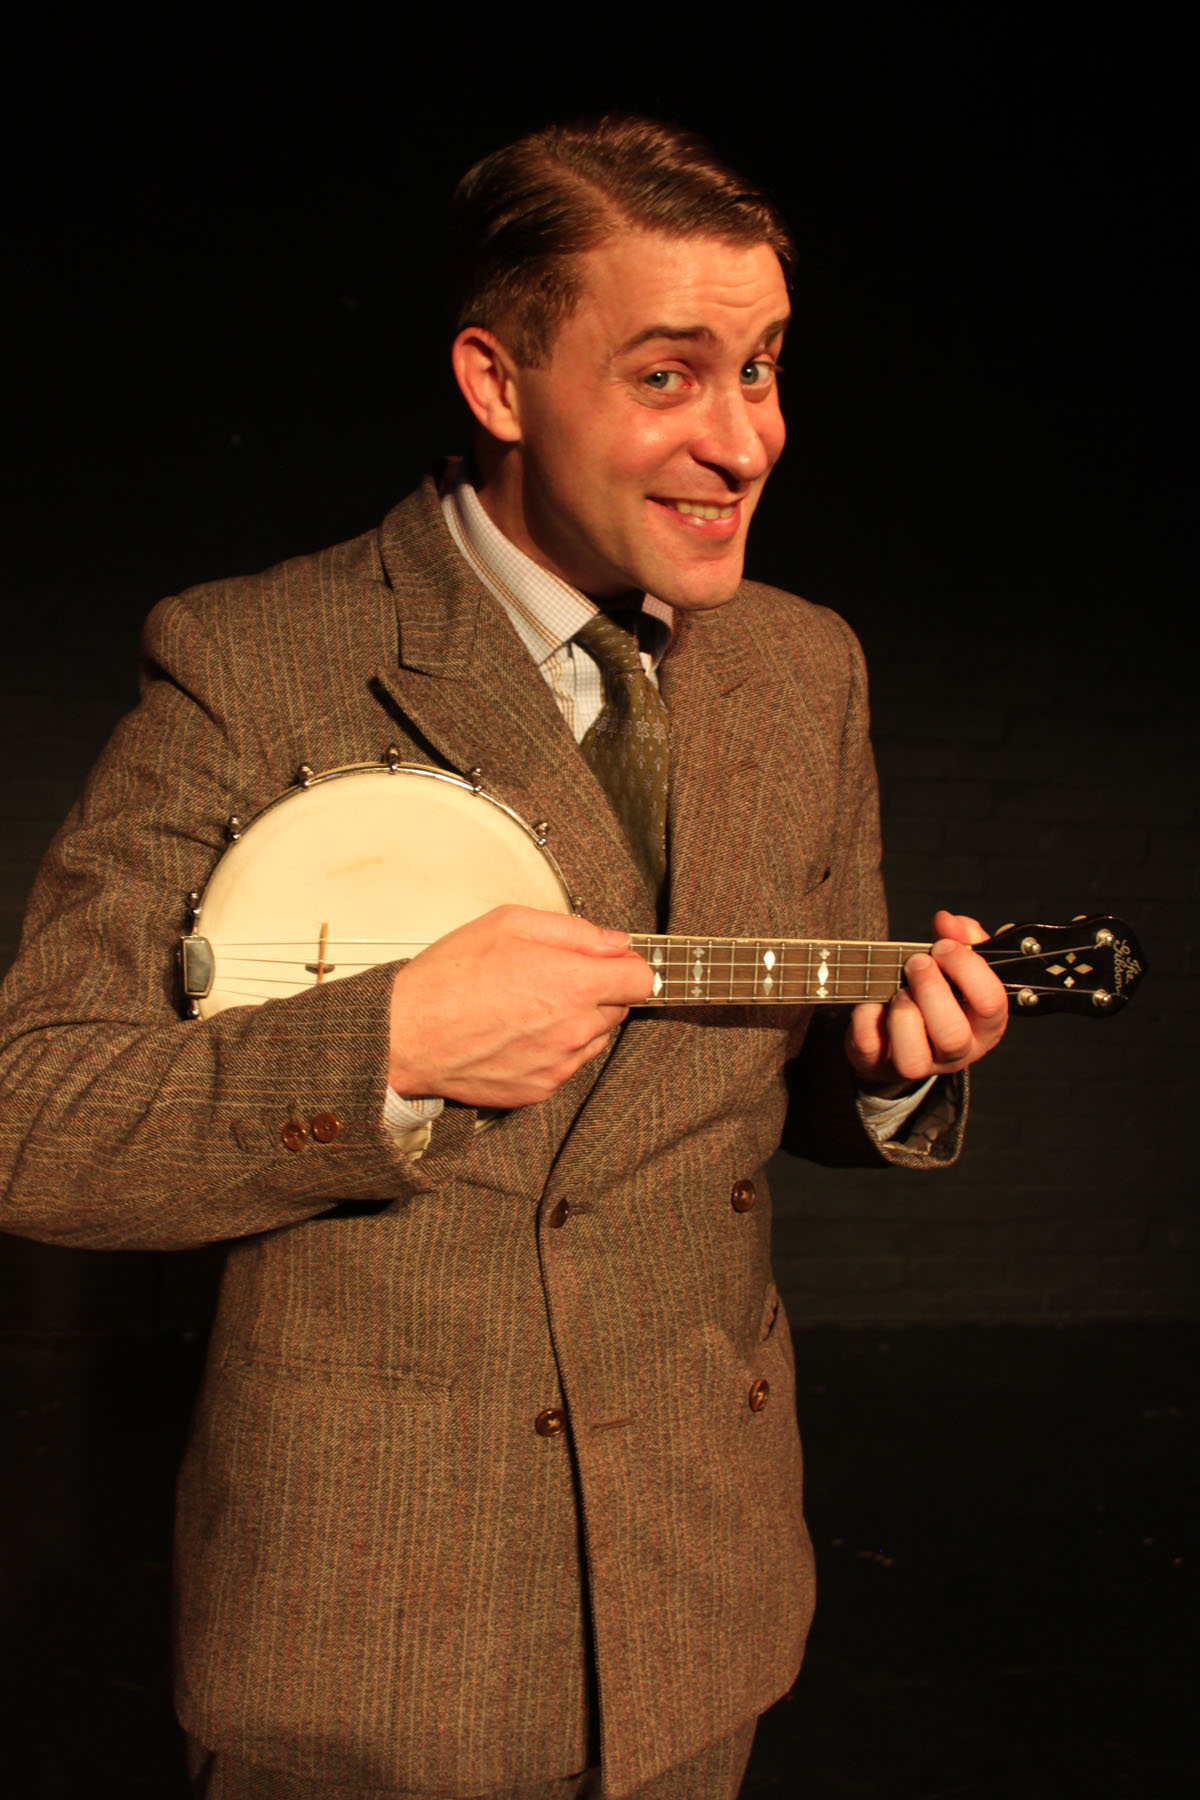 Wirral Globe: Ewan Wardrop as George Formby